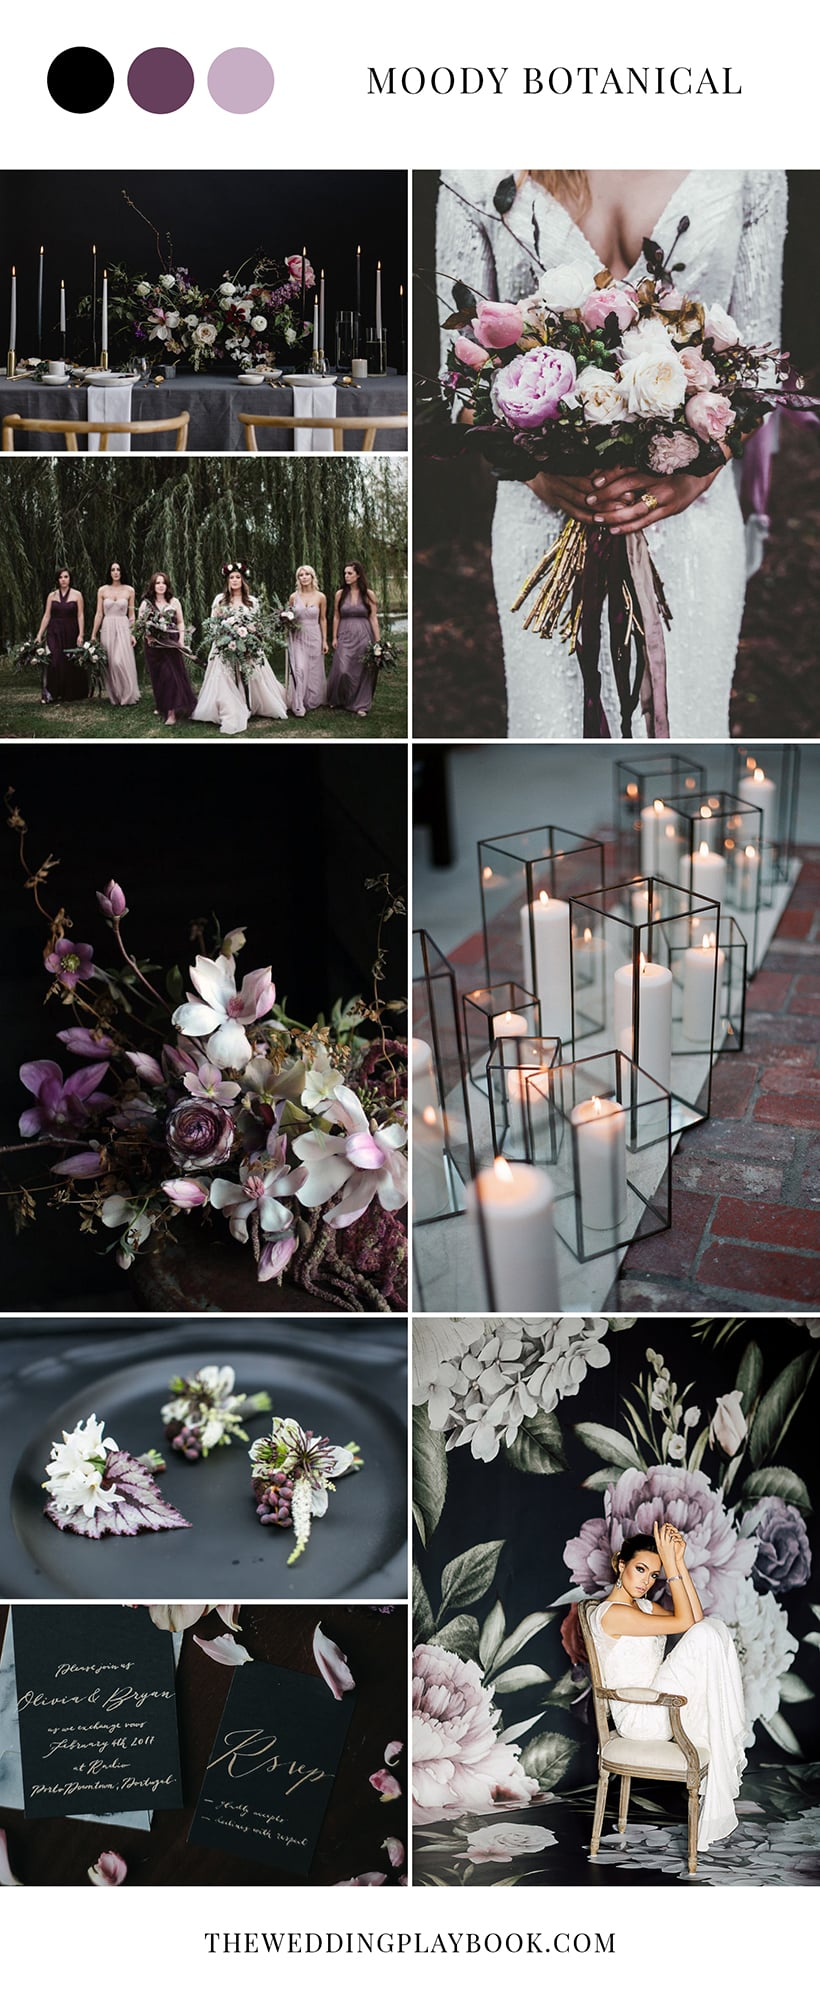 Moody Botanical Black & Purple Wedding Inspiration